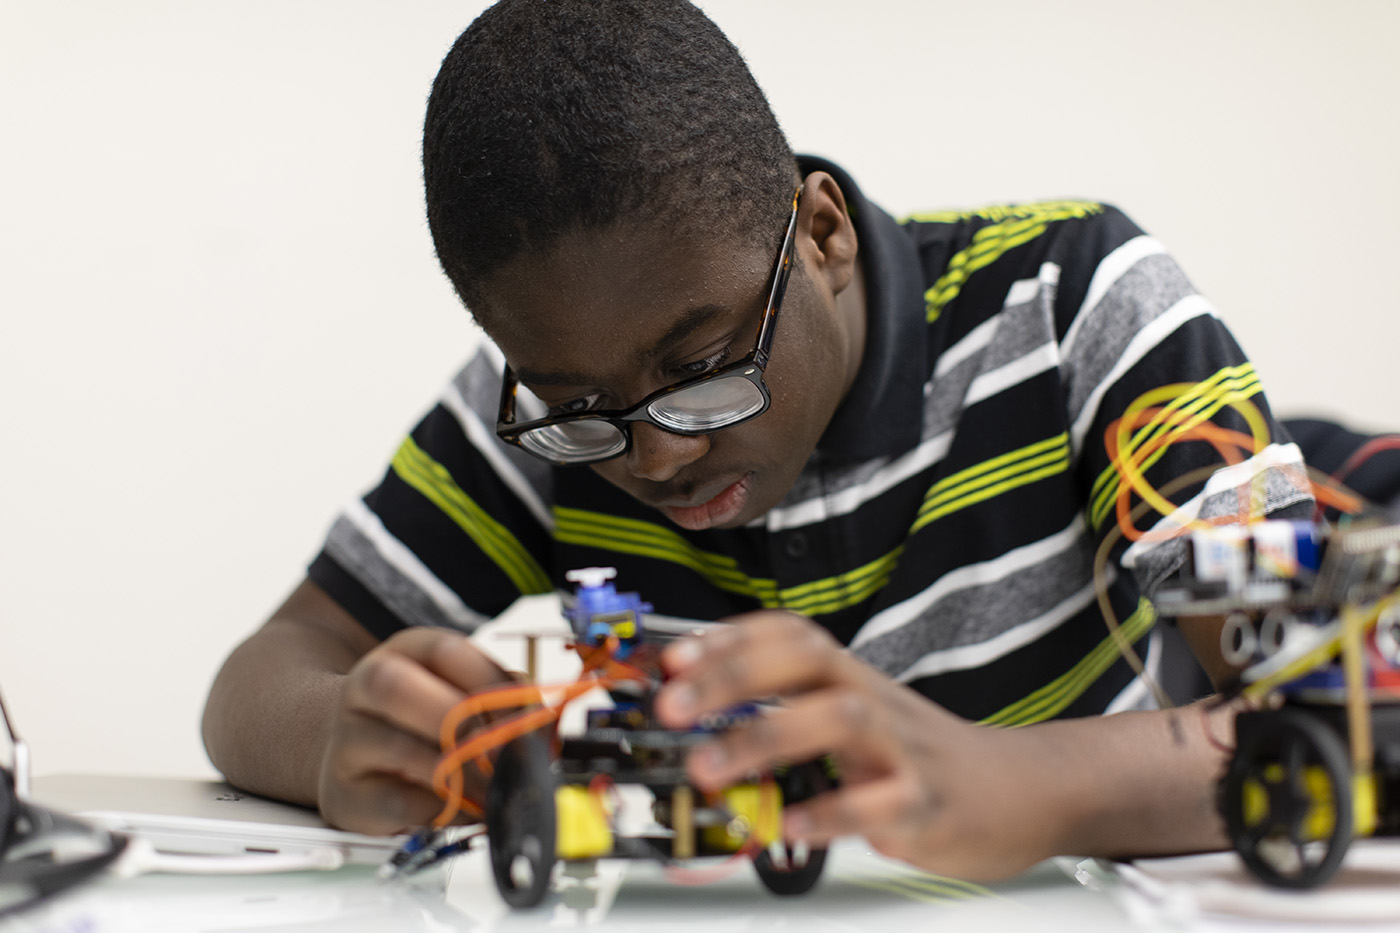 A student in a striped collar shirt leans over the table in front of a complicated and colorful robot. He is actively learning by creating the robot himself.